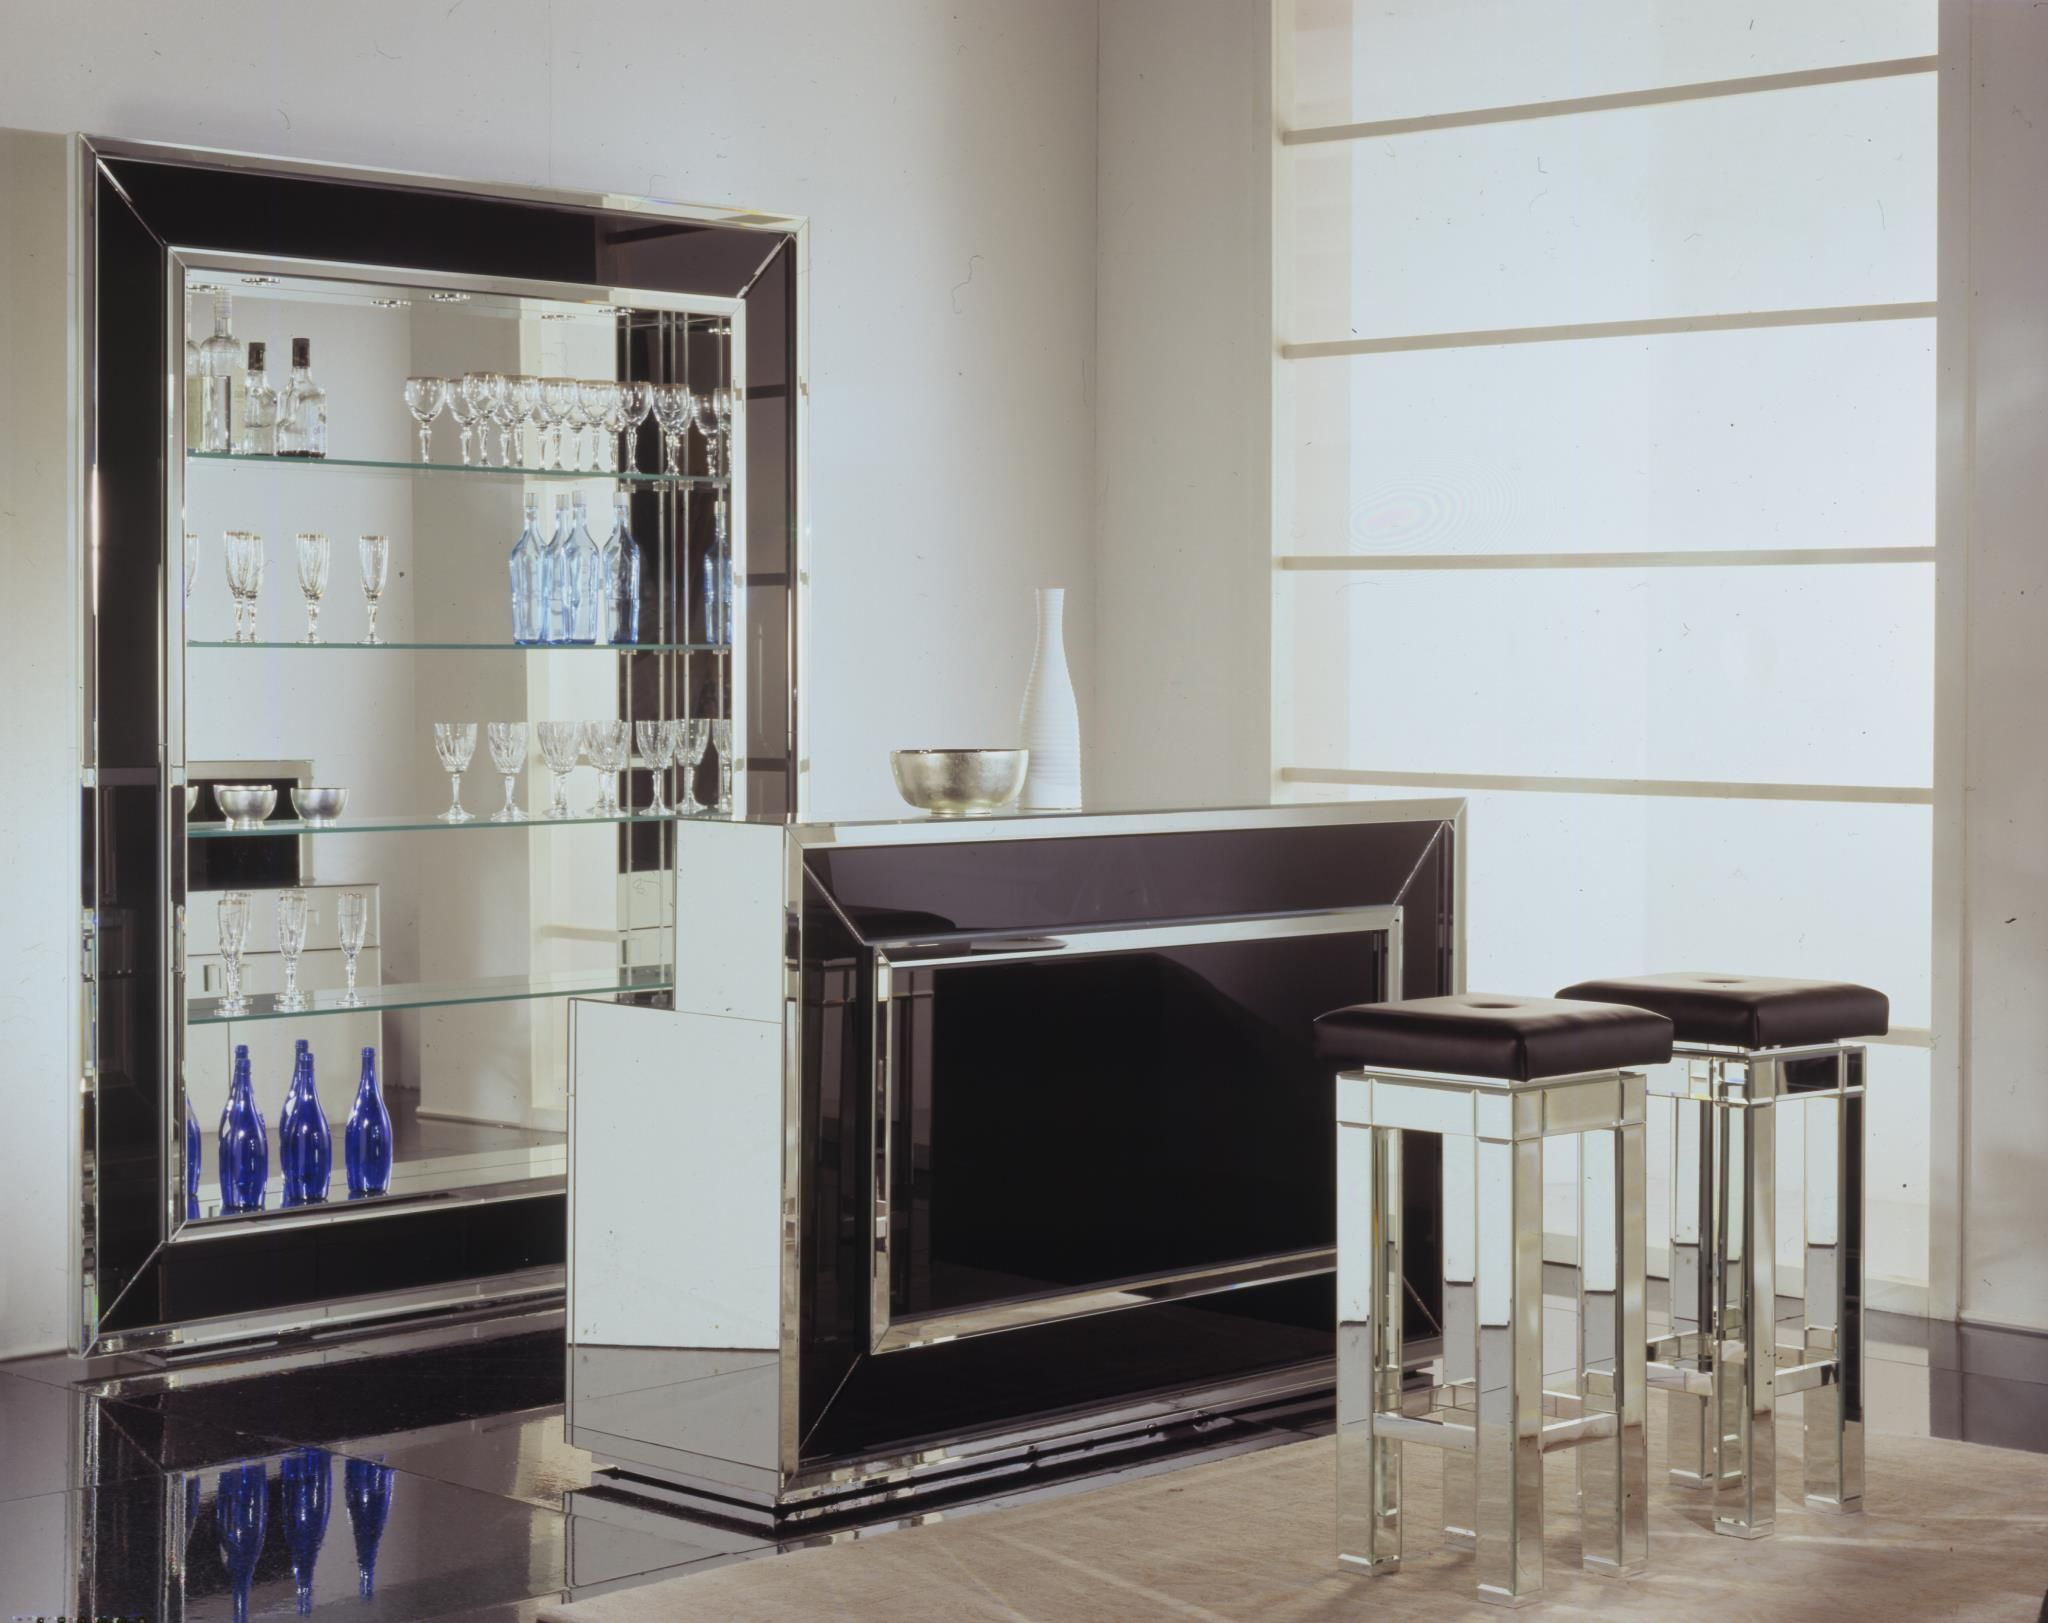 Home Bars   Home Bar   Venetian Luxury Glass Home Bar Furniture   Mondital  UK. Home Bars   Home Bar   Venetian Luxury Glass Home Bar Furniture